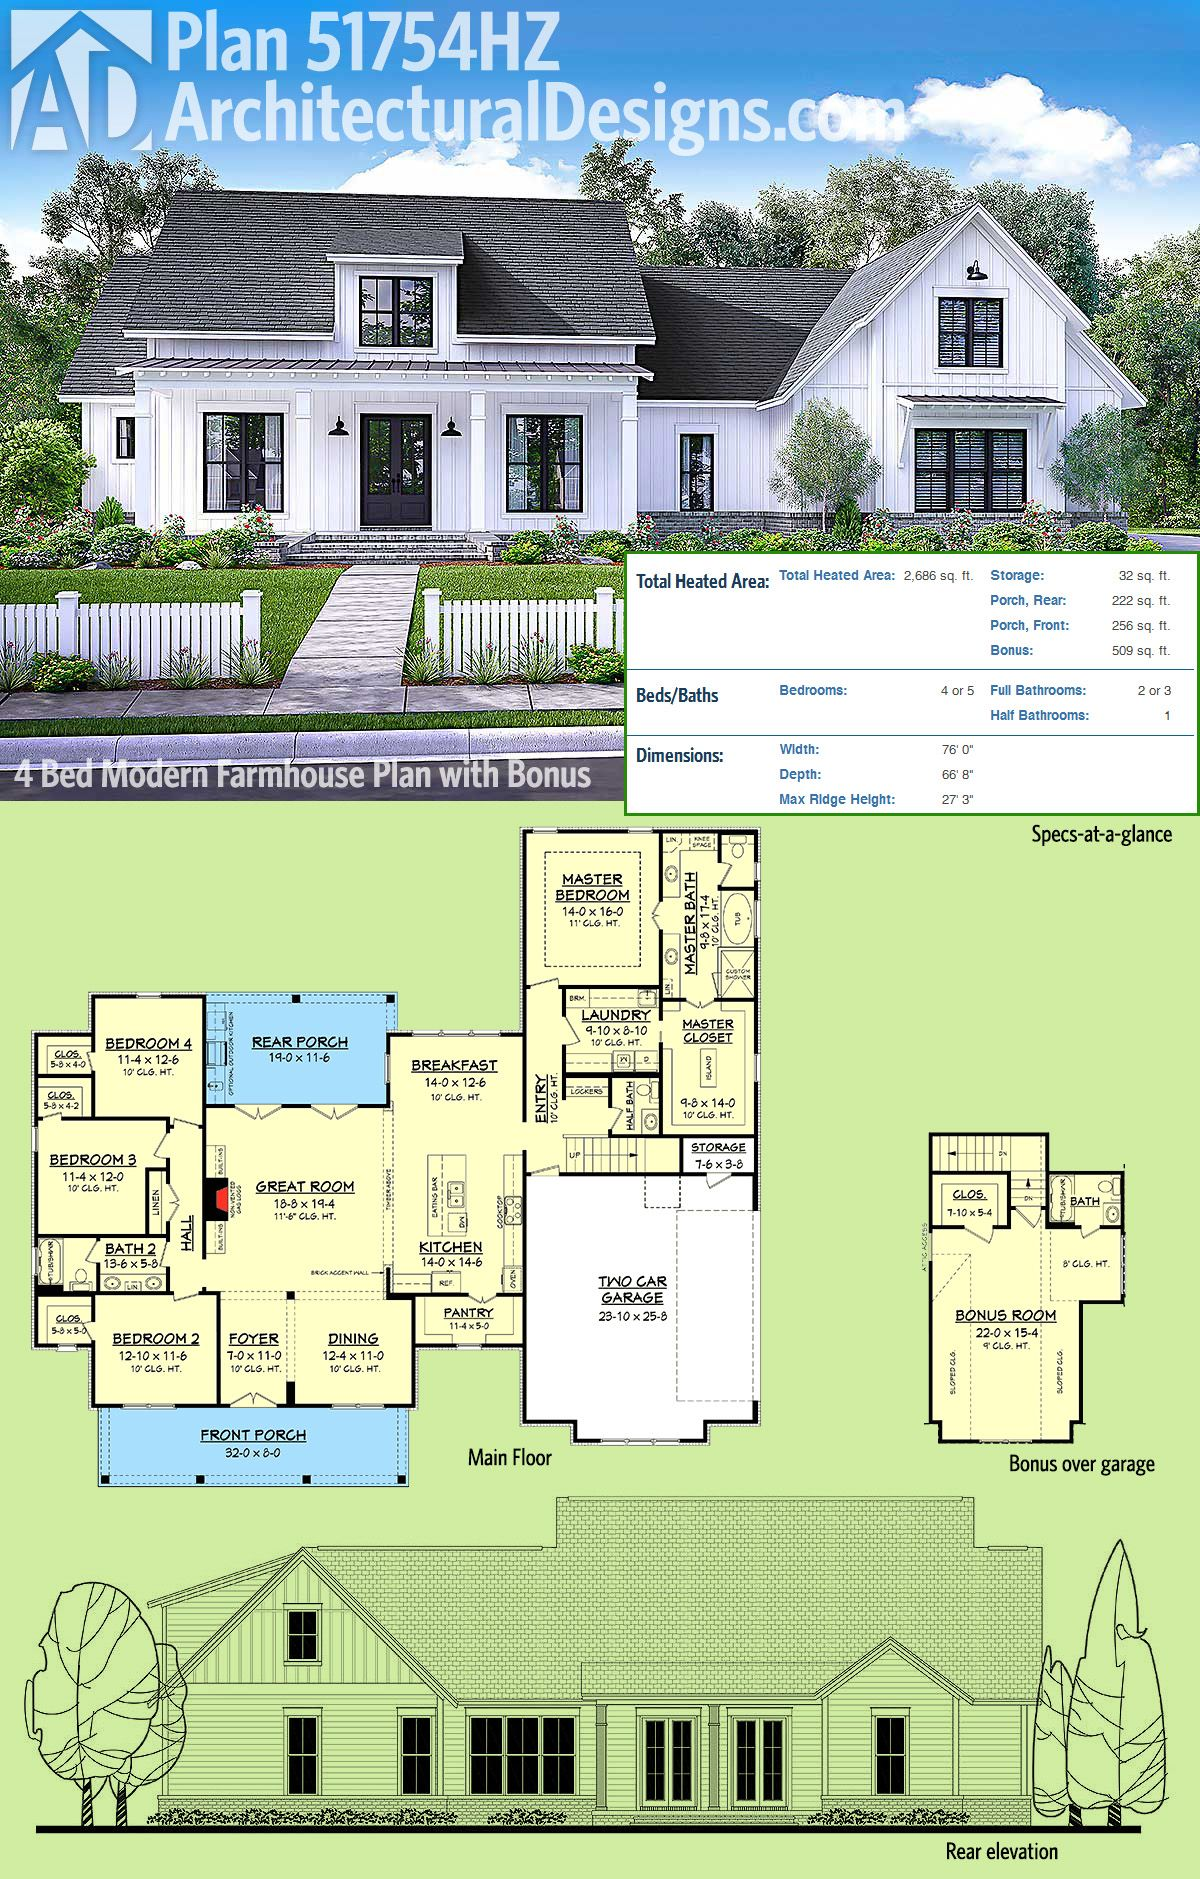 Sims 3 Constrain Floor Elevation Garage : Plan hz modern farmhouse with bonus room